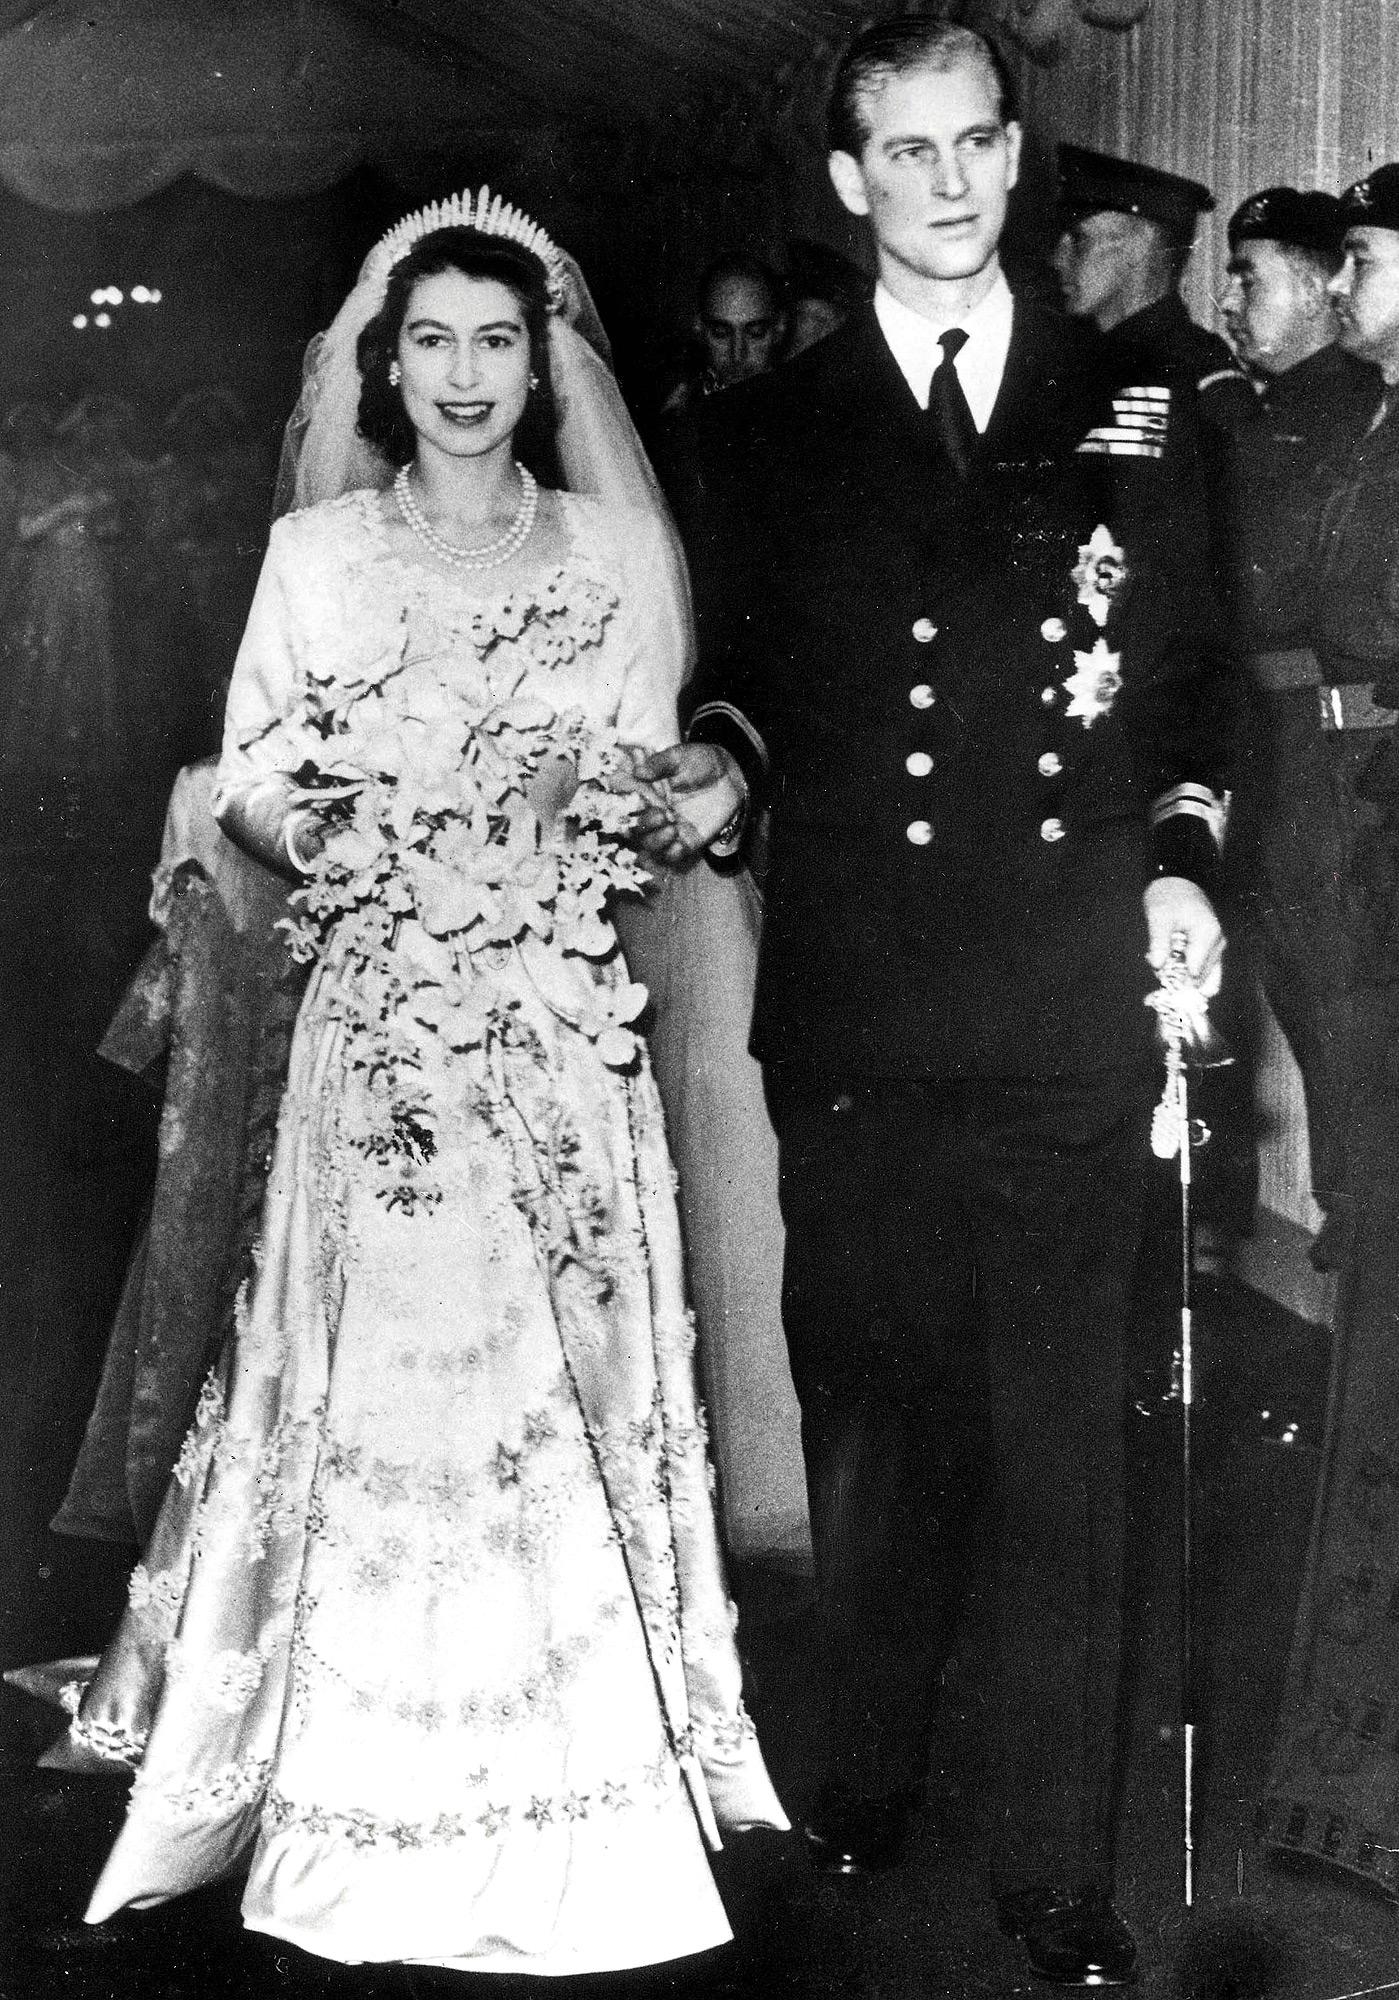 London, England. 20th November, 1947. Princess Elizabeth (later Queen Elizabeth II) and Philip Mountbatten pictured leaving Westminster Abbey after their wedding ceremony.